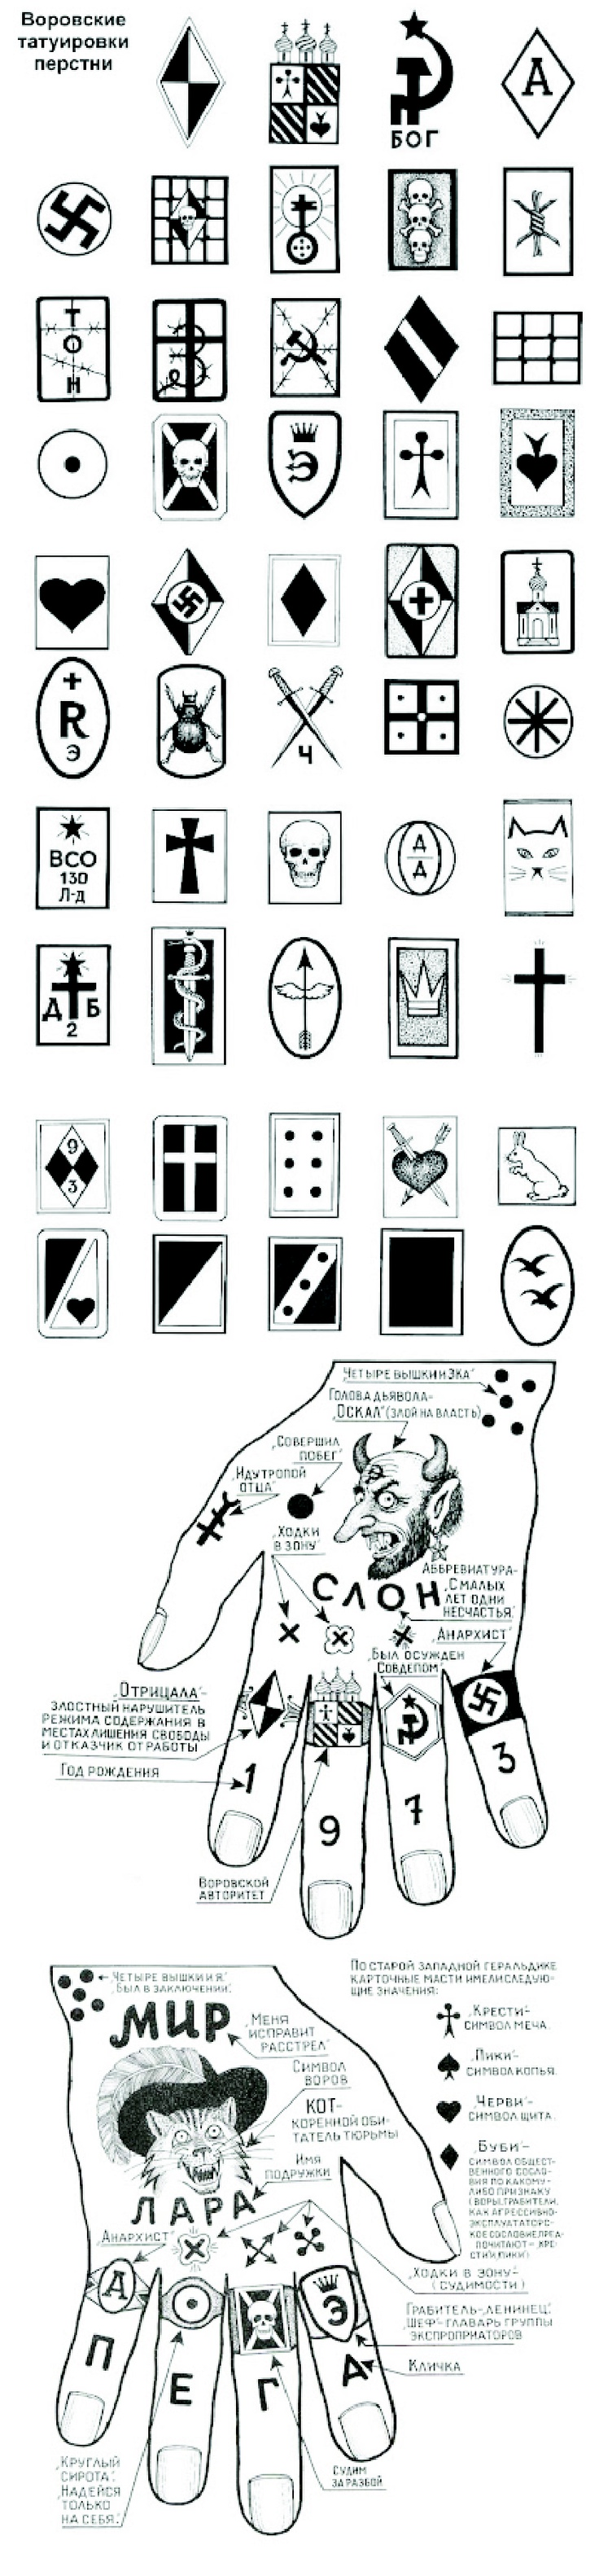 russian prison tattoo book pdf